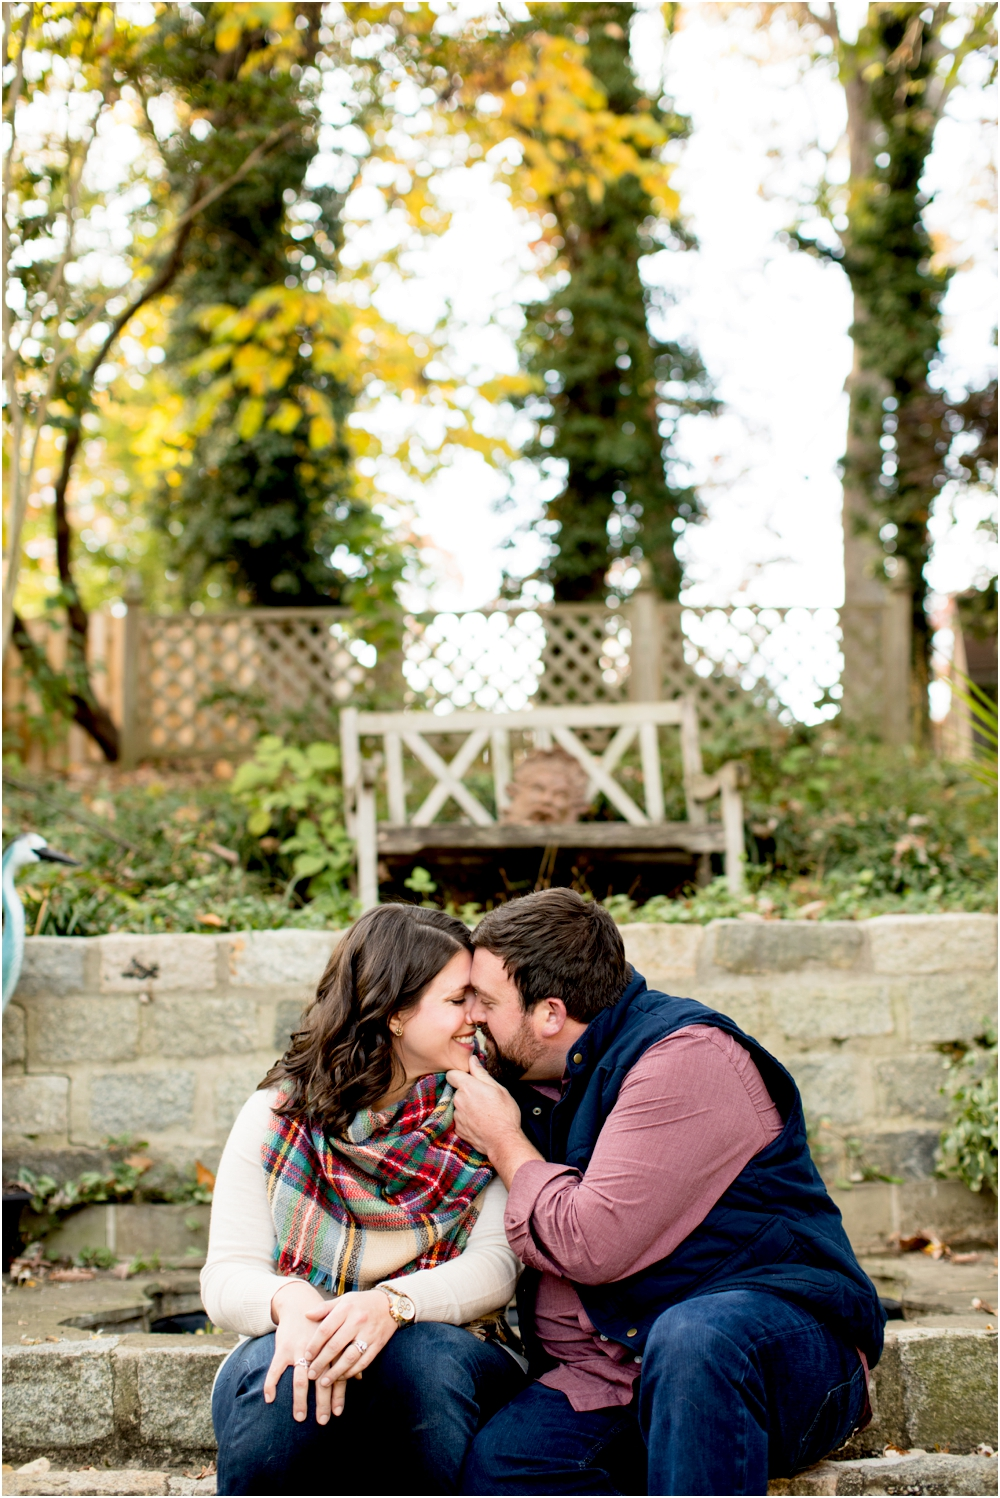 blakely+anniversary+session+ellicott+city+living+radiant+photograph+photos_0016.jpg